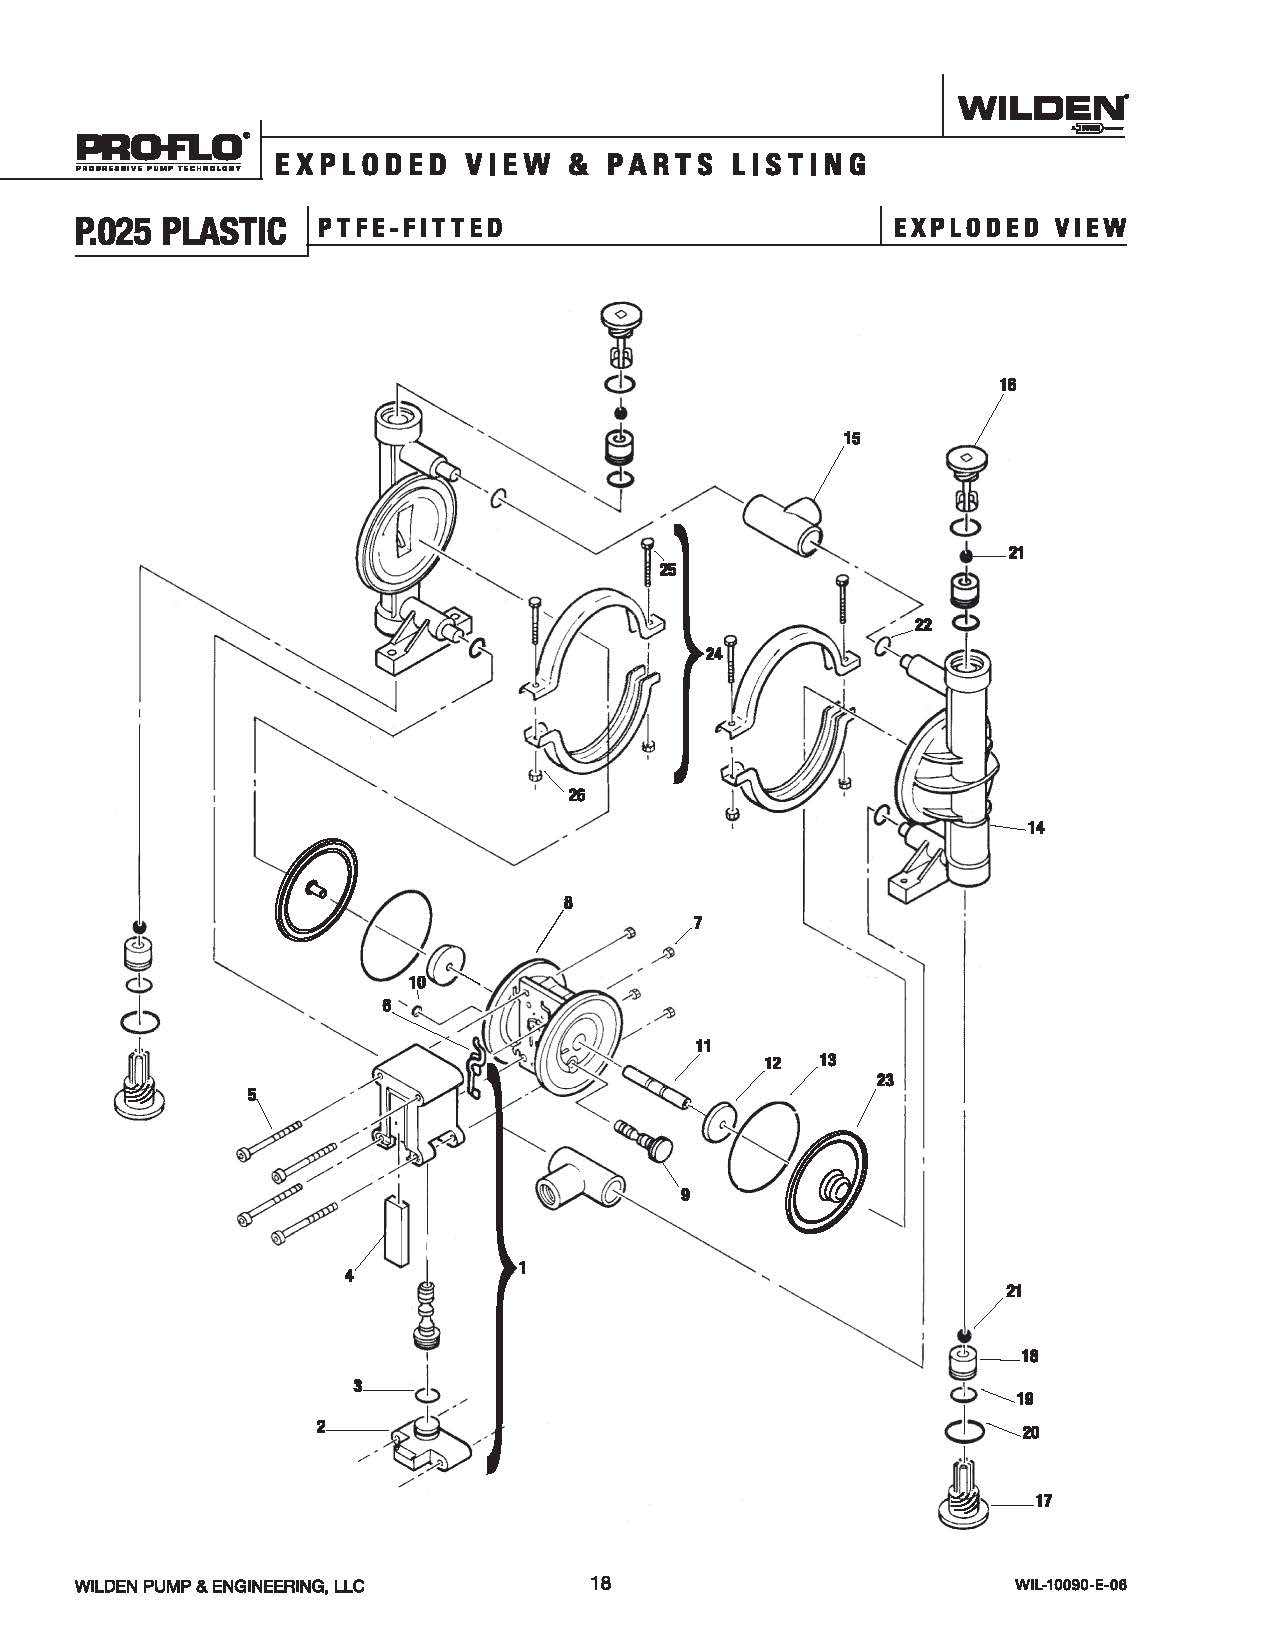 ARO WIRING DIAGRAM - Auto Electrical Wiring Diagram on automotive body, electrical diagrams, automotive engine, automotive assembly, anbotek car multimedia player diagrams, automotive brakes diagrams, automotive warranty, automotive blueprints, automotive starter, automotive vacuum diagrams, pinout diagrams, wire diagrams, automotive chassis diagrams, car repair diagrams, automotive battery, automotive parts diagrams, automotive welding diagrams, automotive braking system, automotive software, automotive electrical,